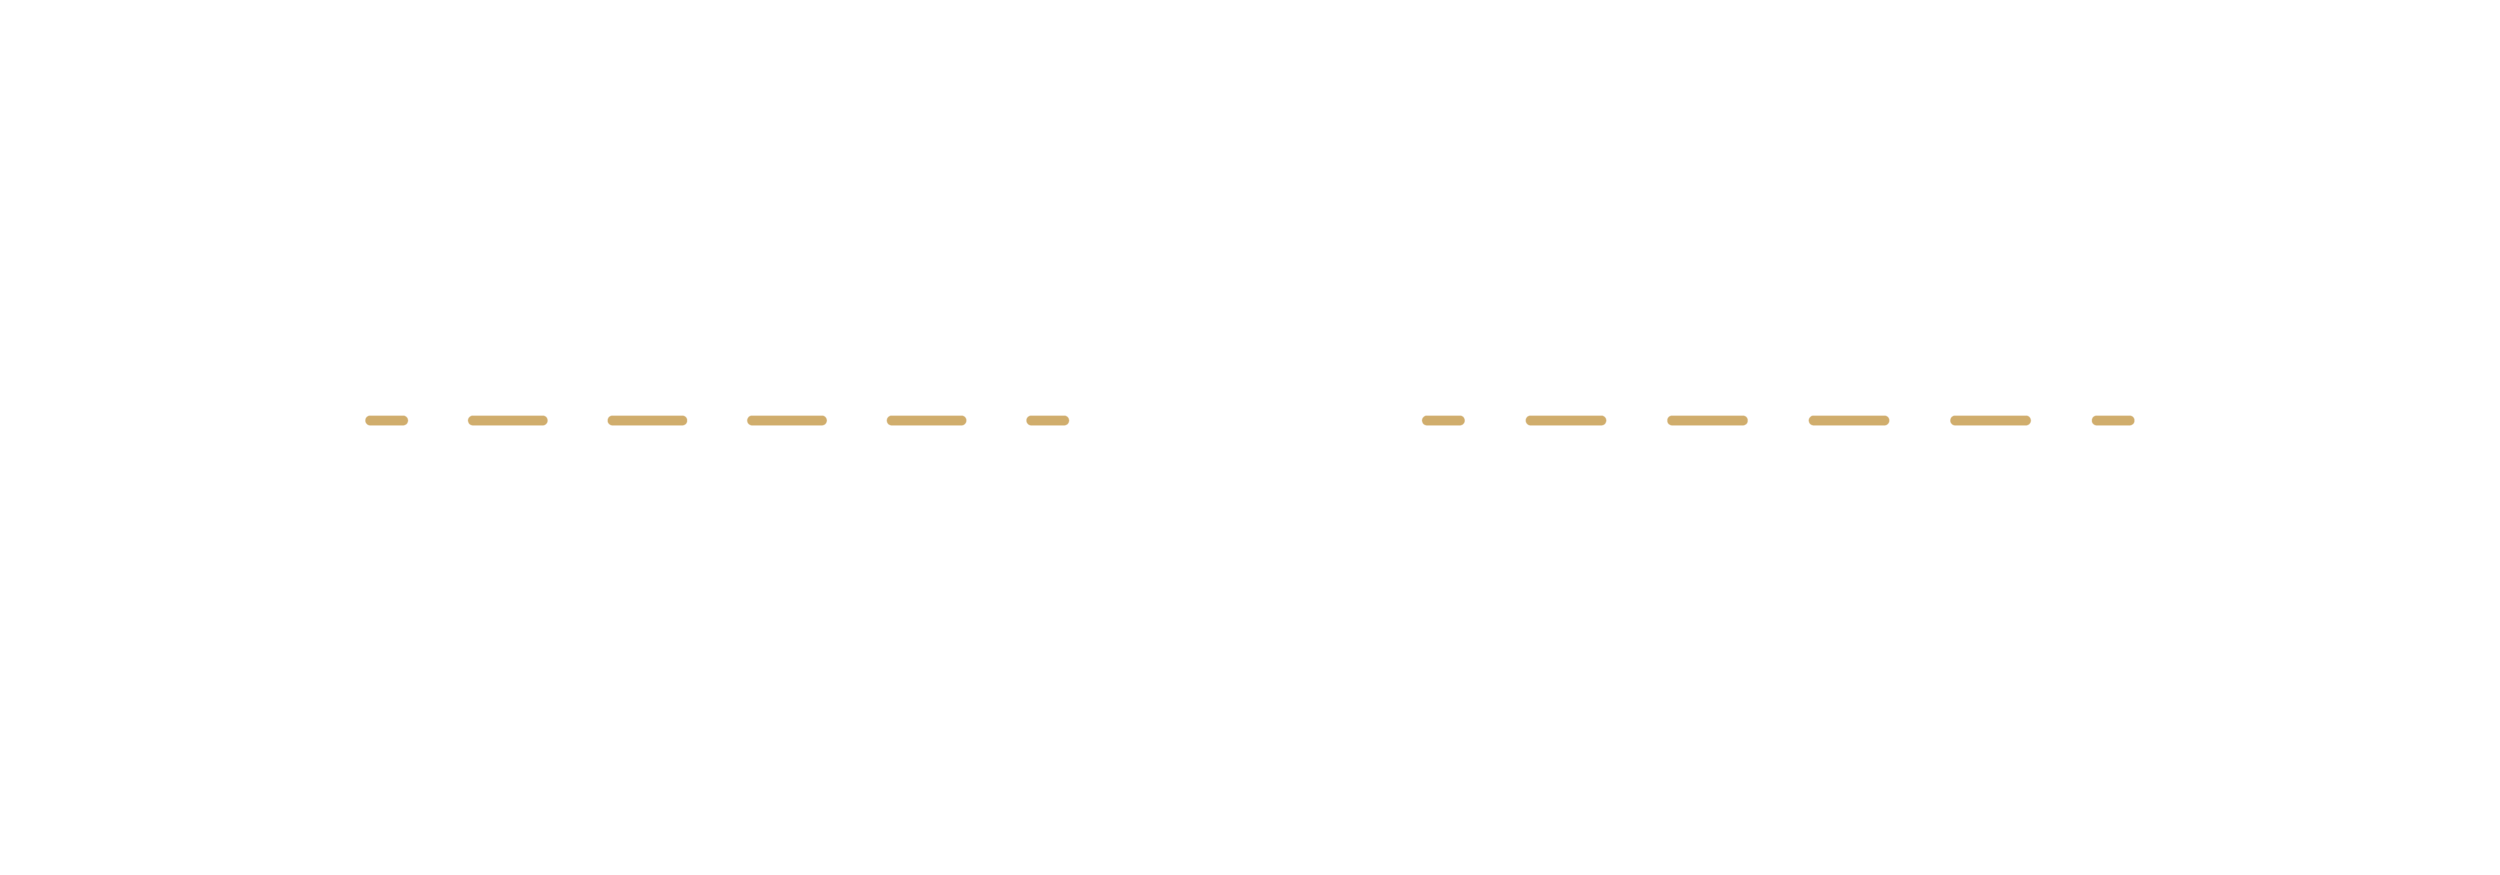 tortilla chip pricing.png